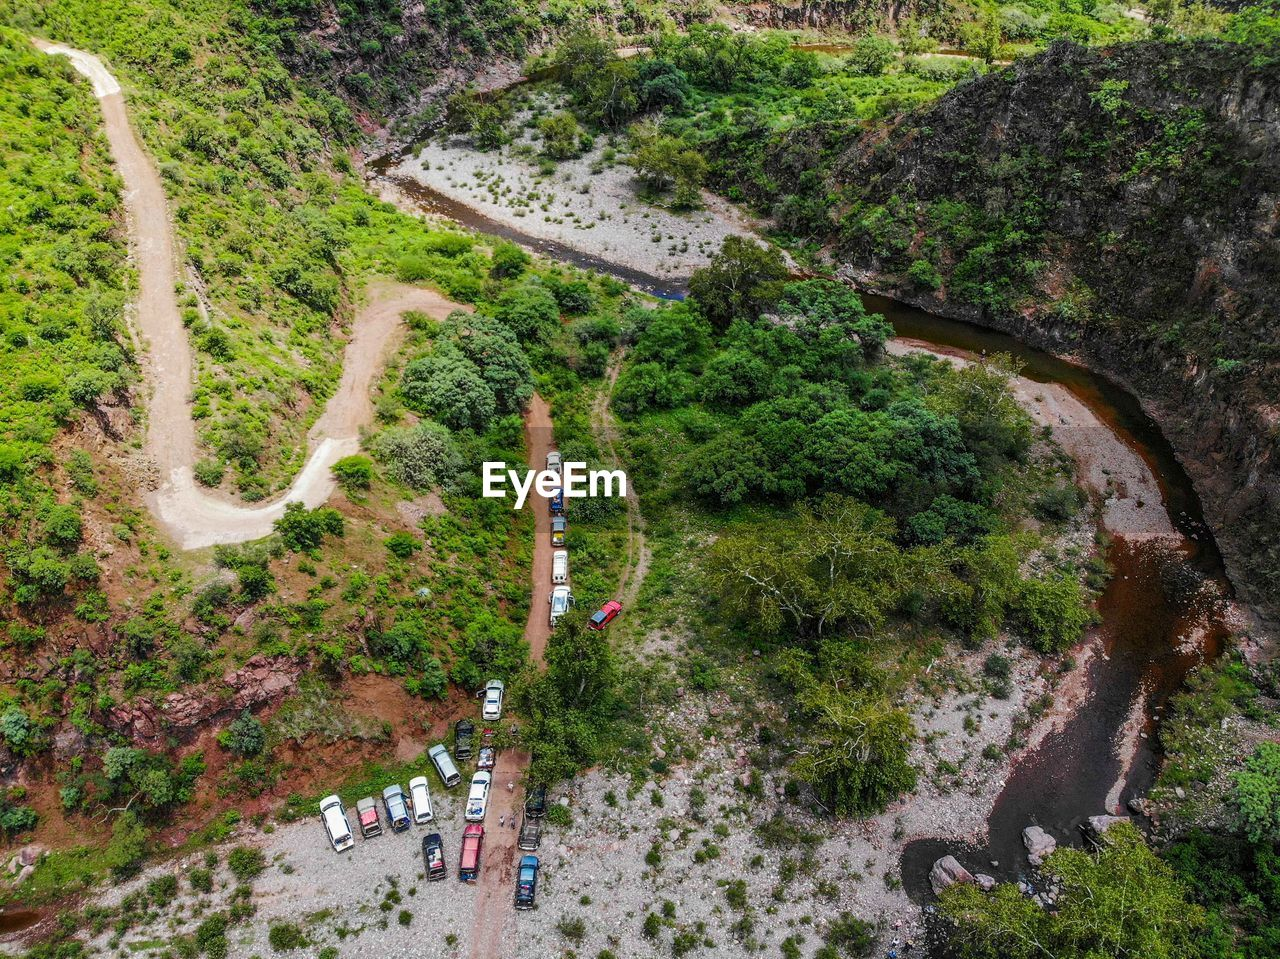 plant, tree, high angle view, road, day, nature, transportation, no people, mode of transportation, motor vehicle, car, land vehicle, outdoors, curve, growth, mountain road, environment, scenics - nature, green color, aerial view